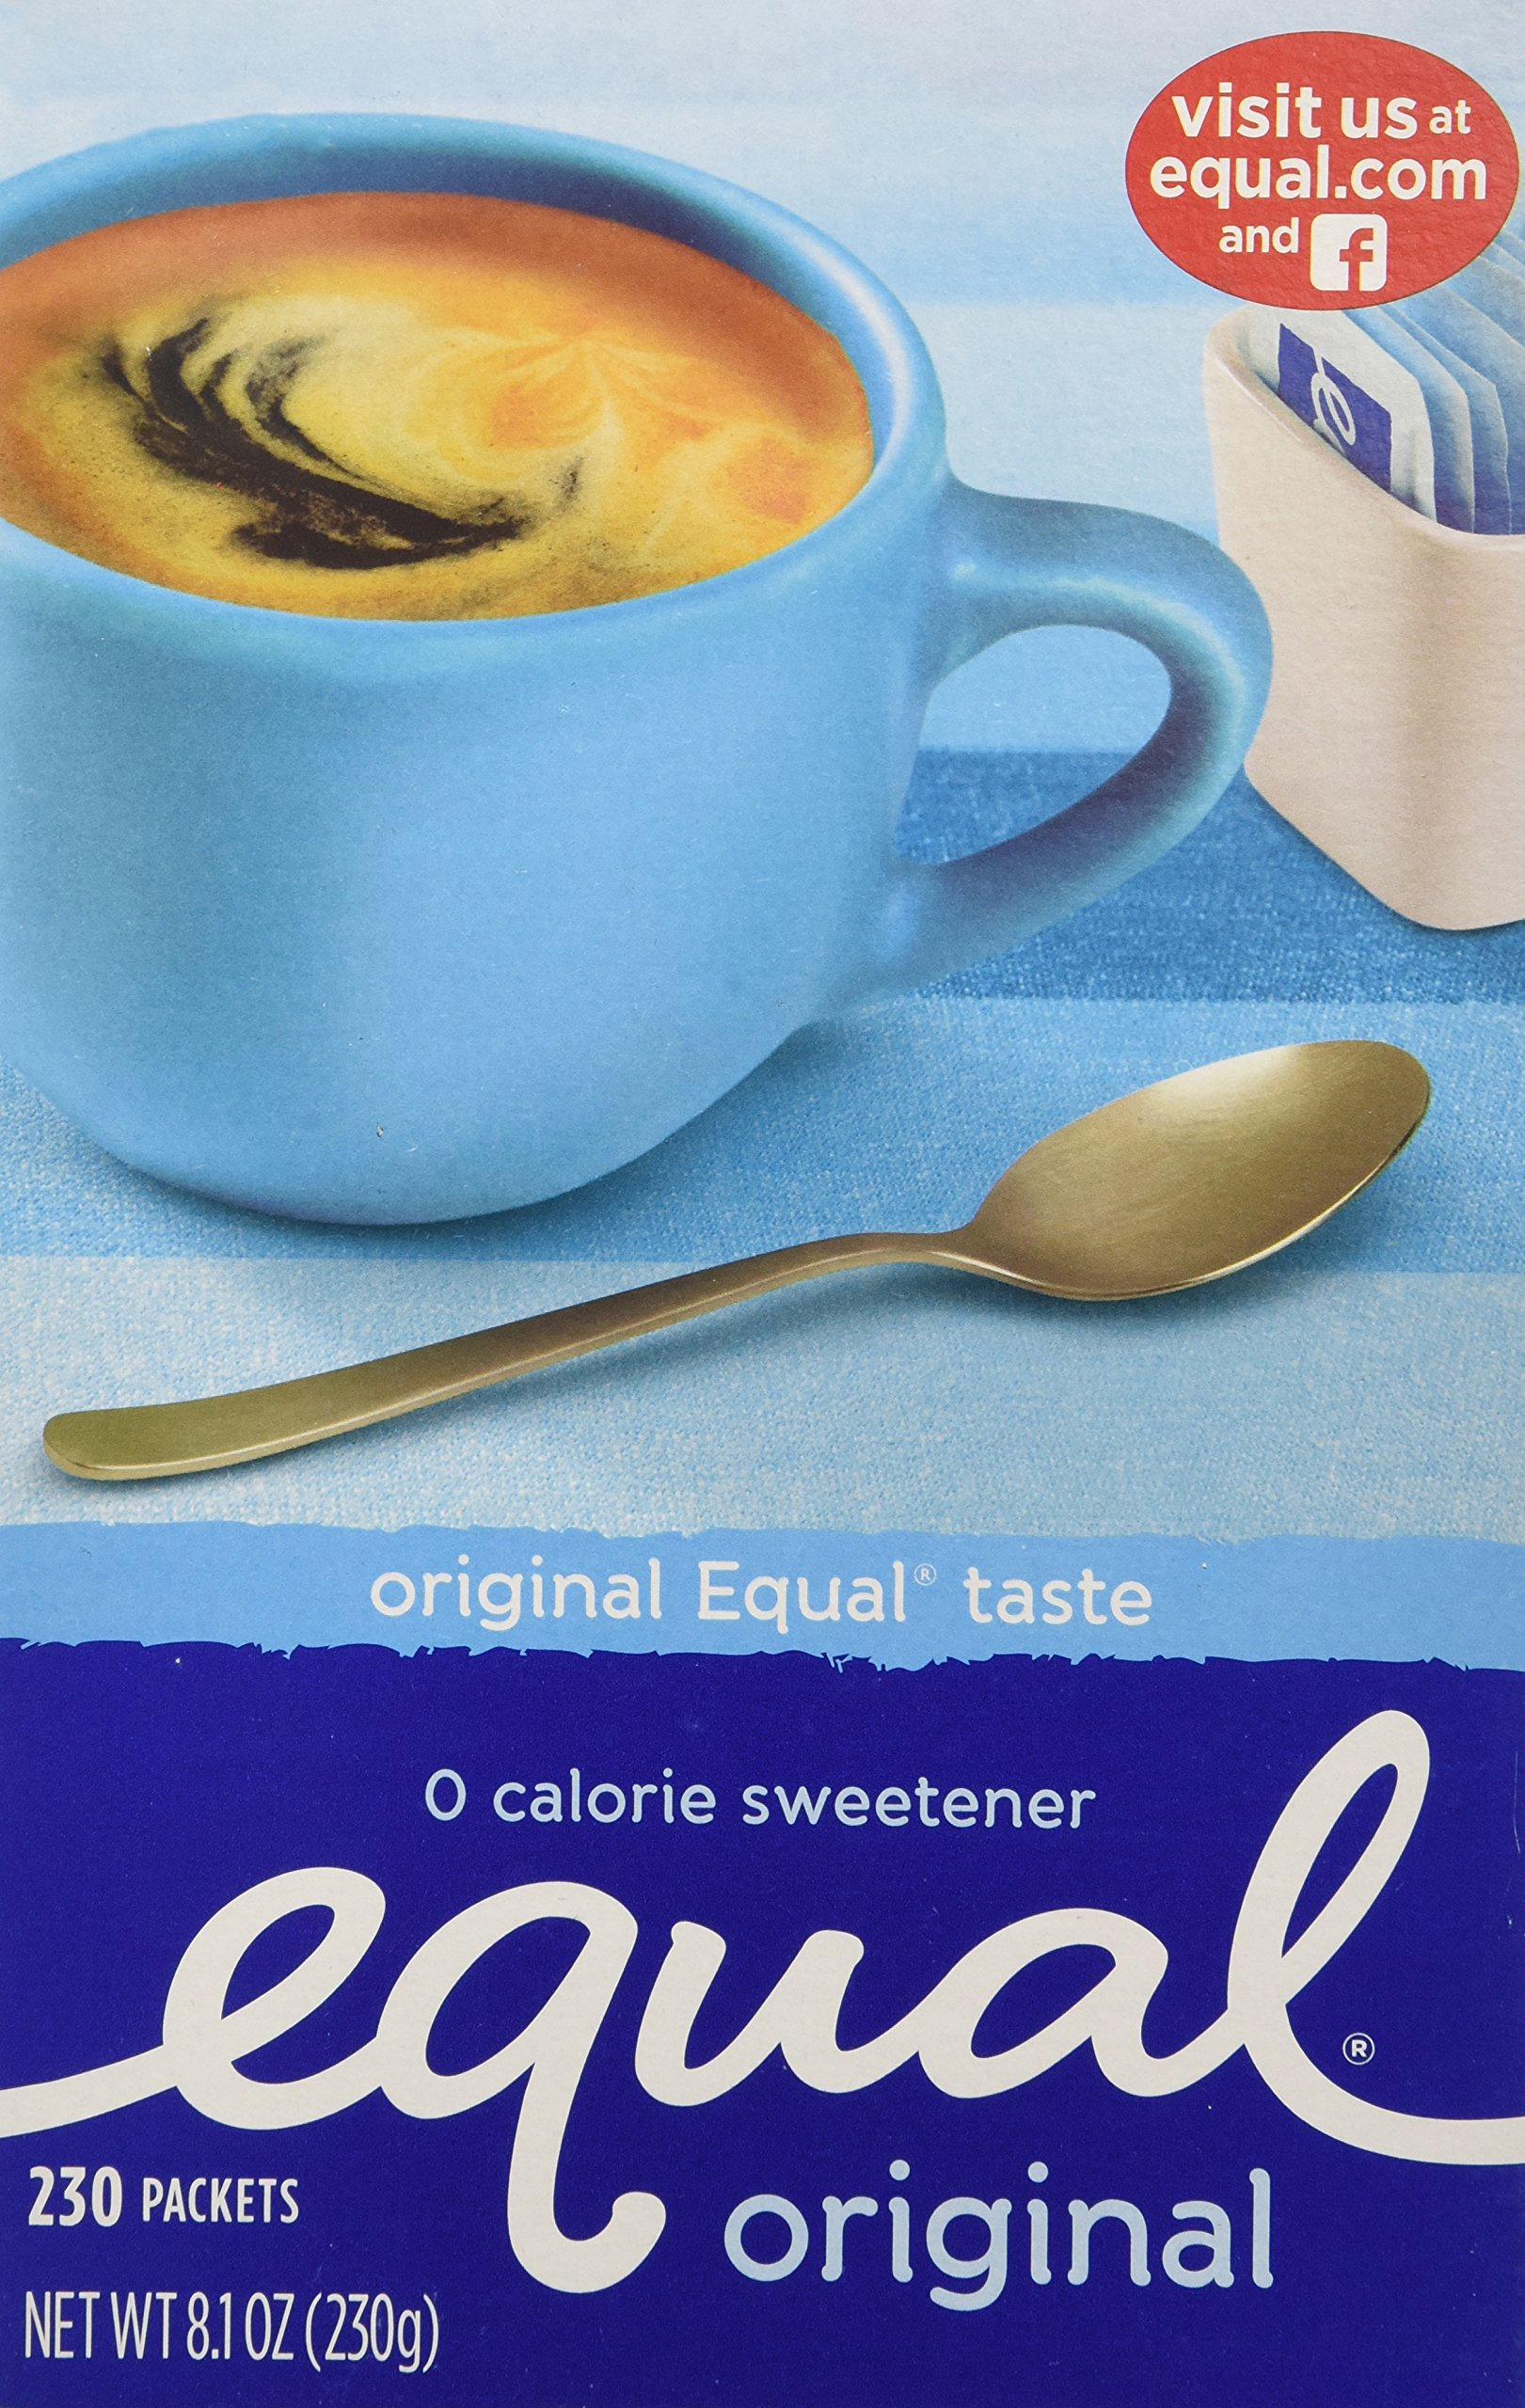 EQUAL 0 Calorie Sweetener, Sugar Substitute, Zero Calorie Sugar Alternative Sweetener Packets, Sugar Alternative, 230 Count (Pack of 3) by Equal (Image #2)